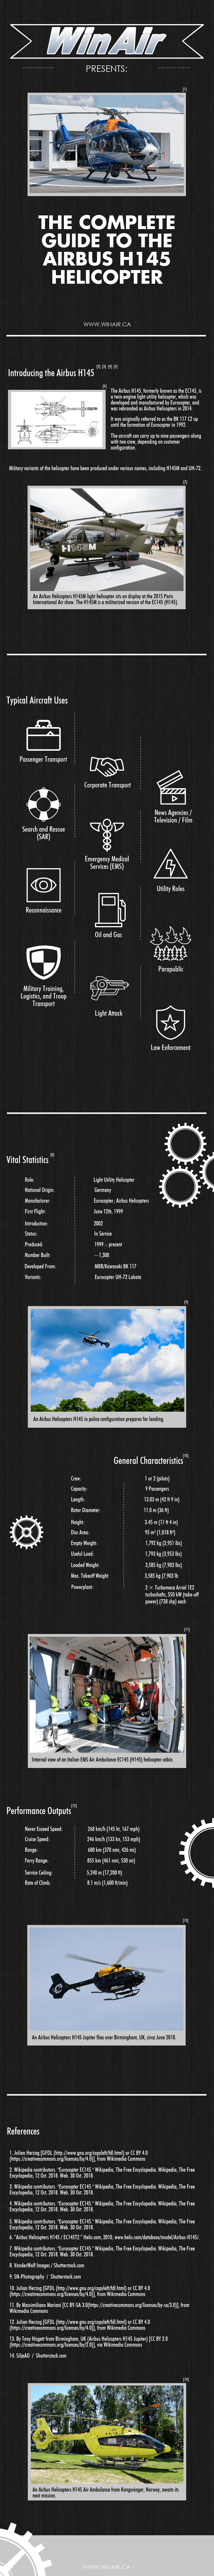 WinAir Presents: The Lockheed C-130 Hercules - Infographic Image